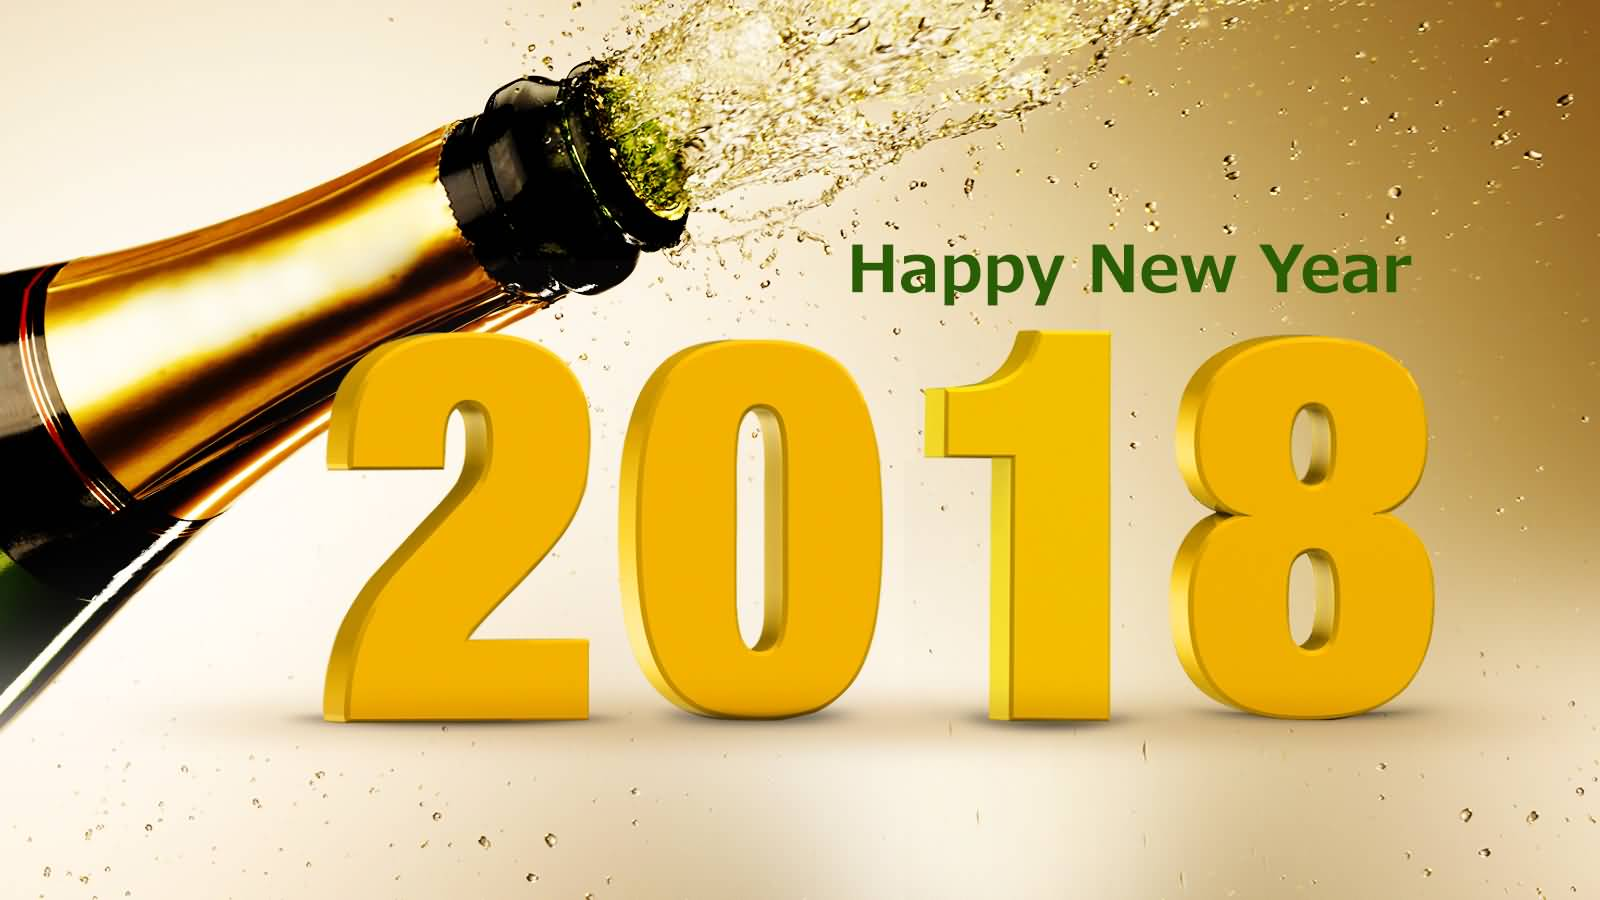 New Year 2018 Status Image Picture Photo Wallpaper 15